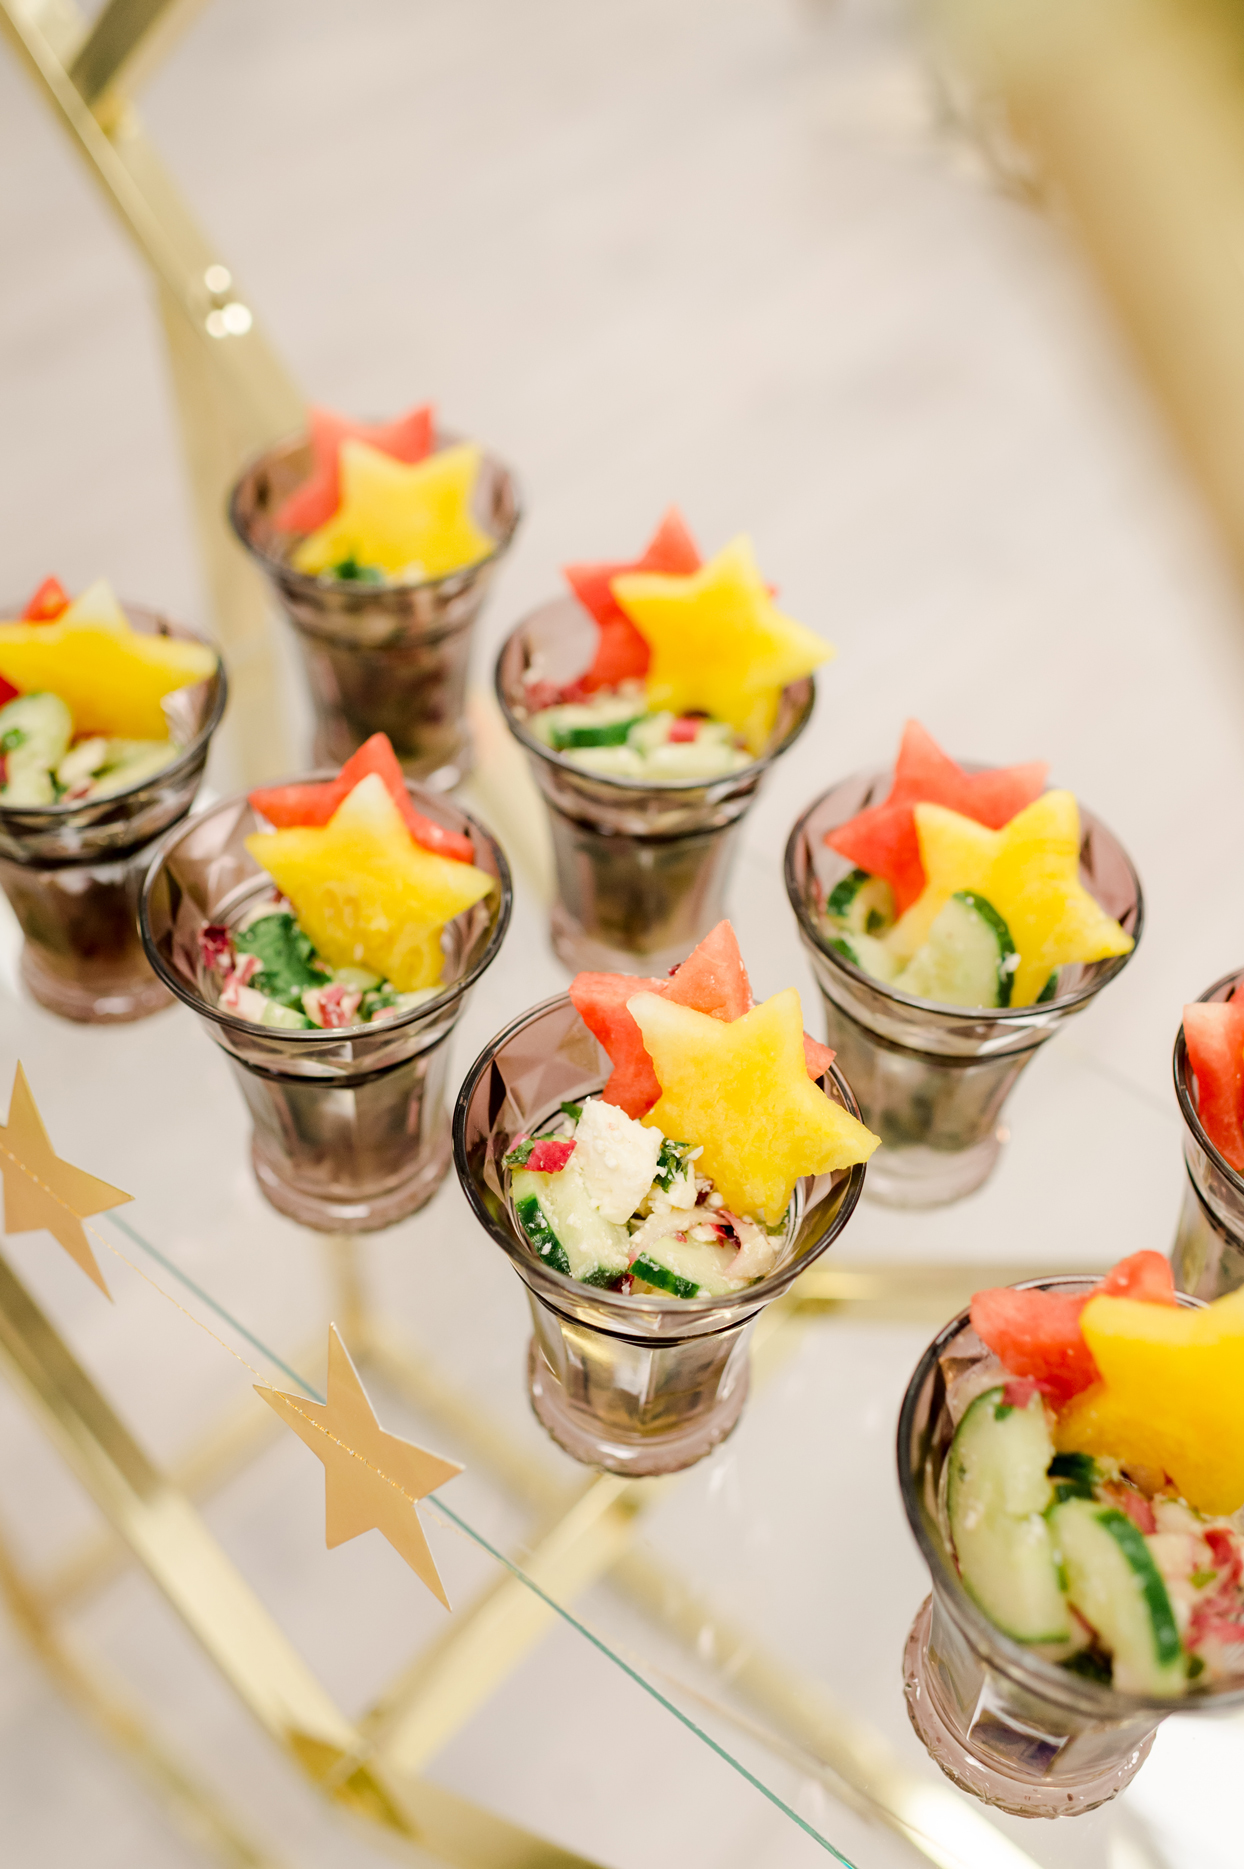 star shaped melon treats in salad cups